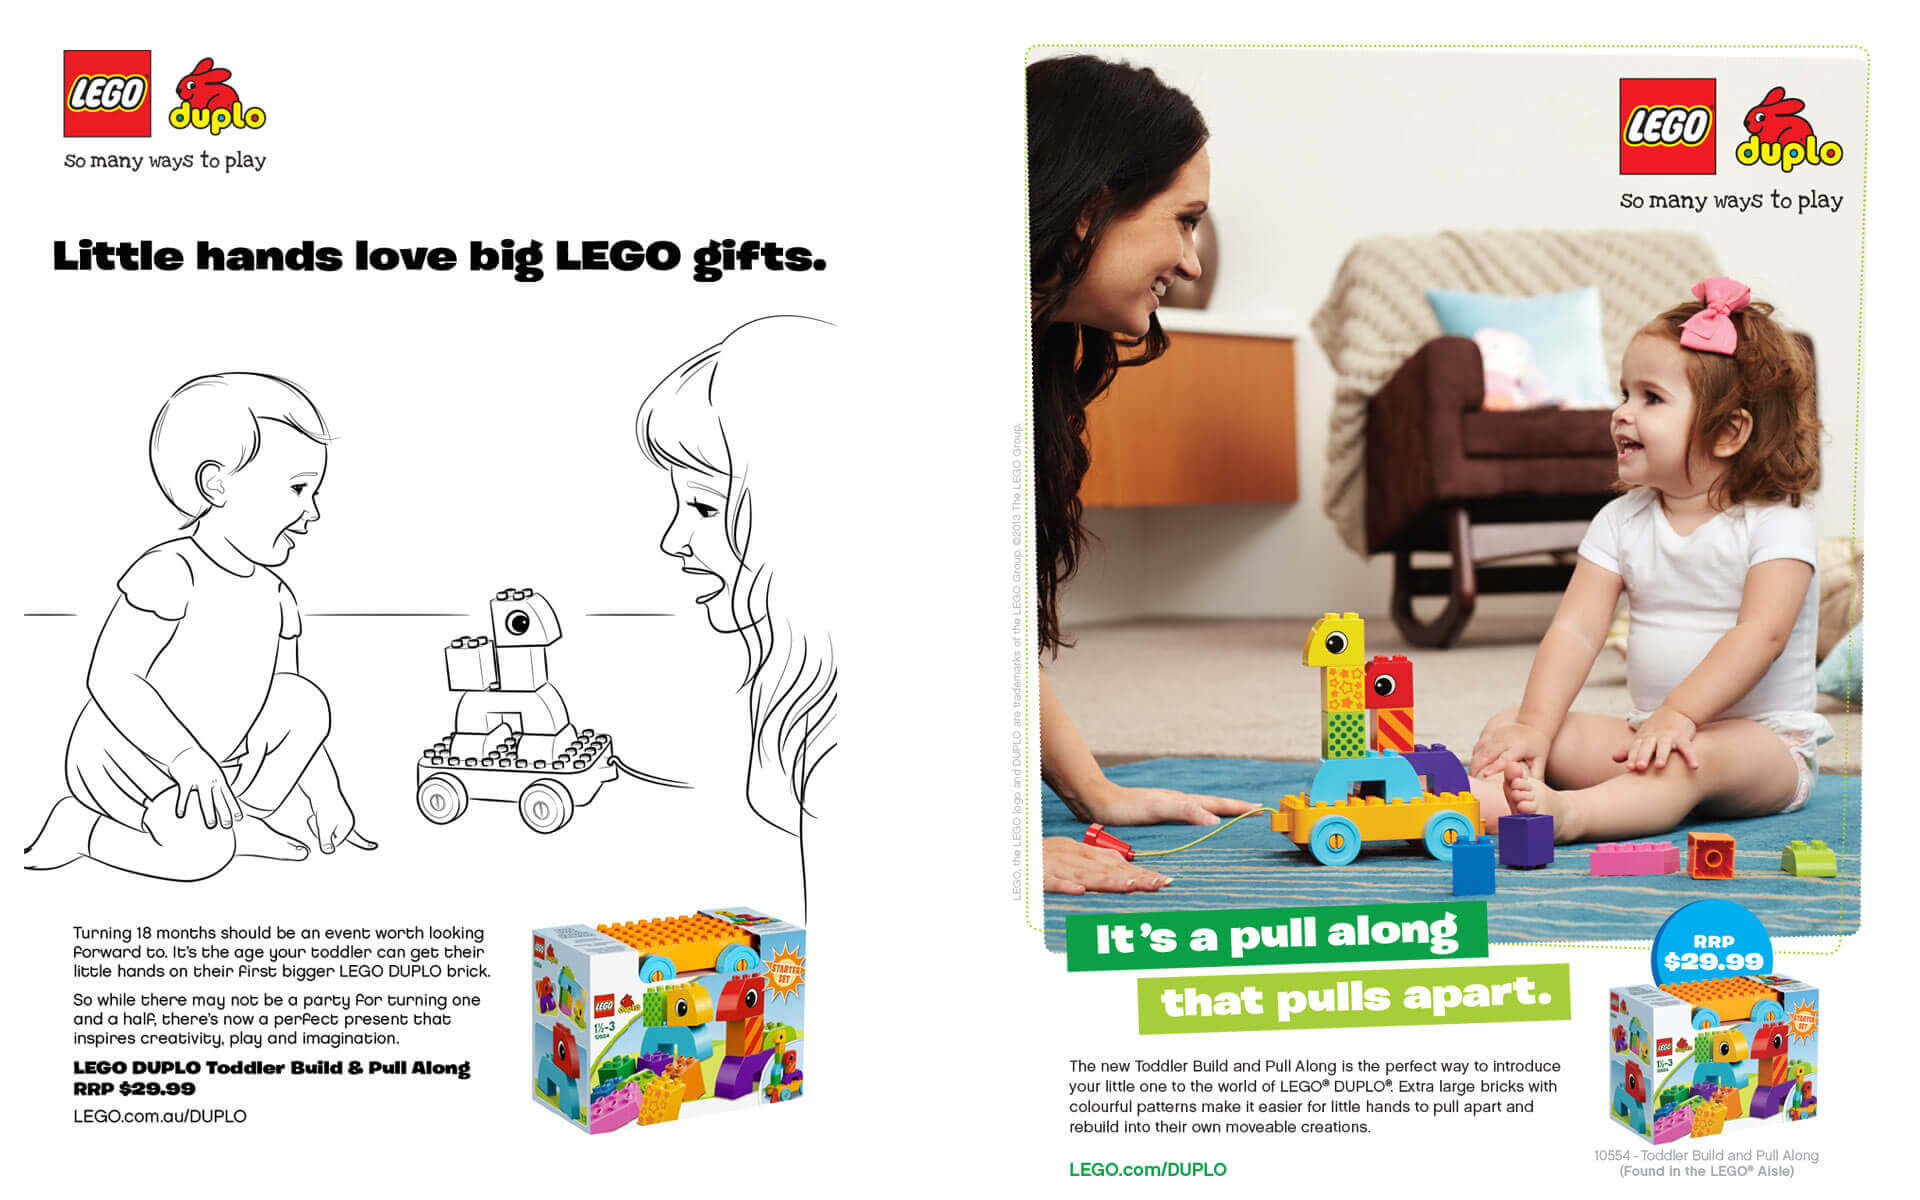 LEGO Duplo 'It's a Pull-along that Pulls Apart' magazine ad and scamp.